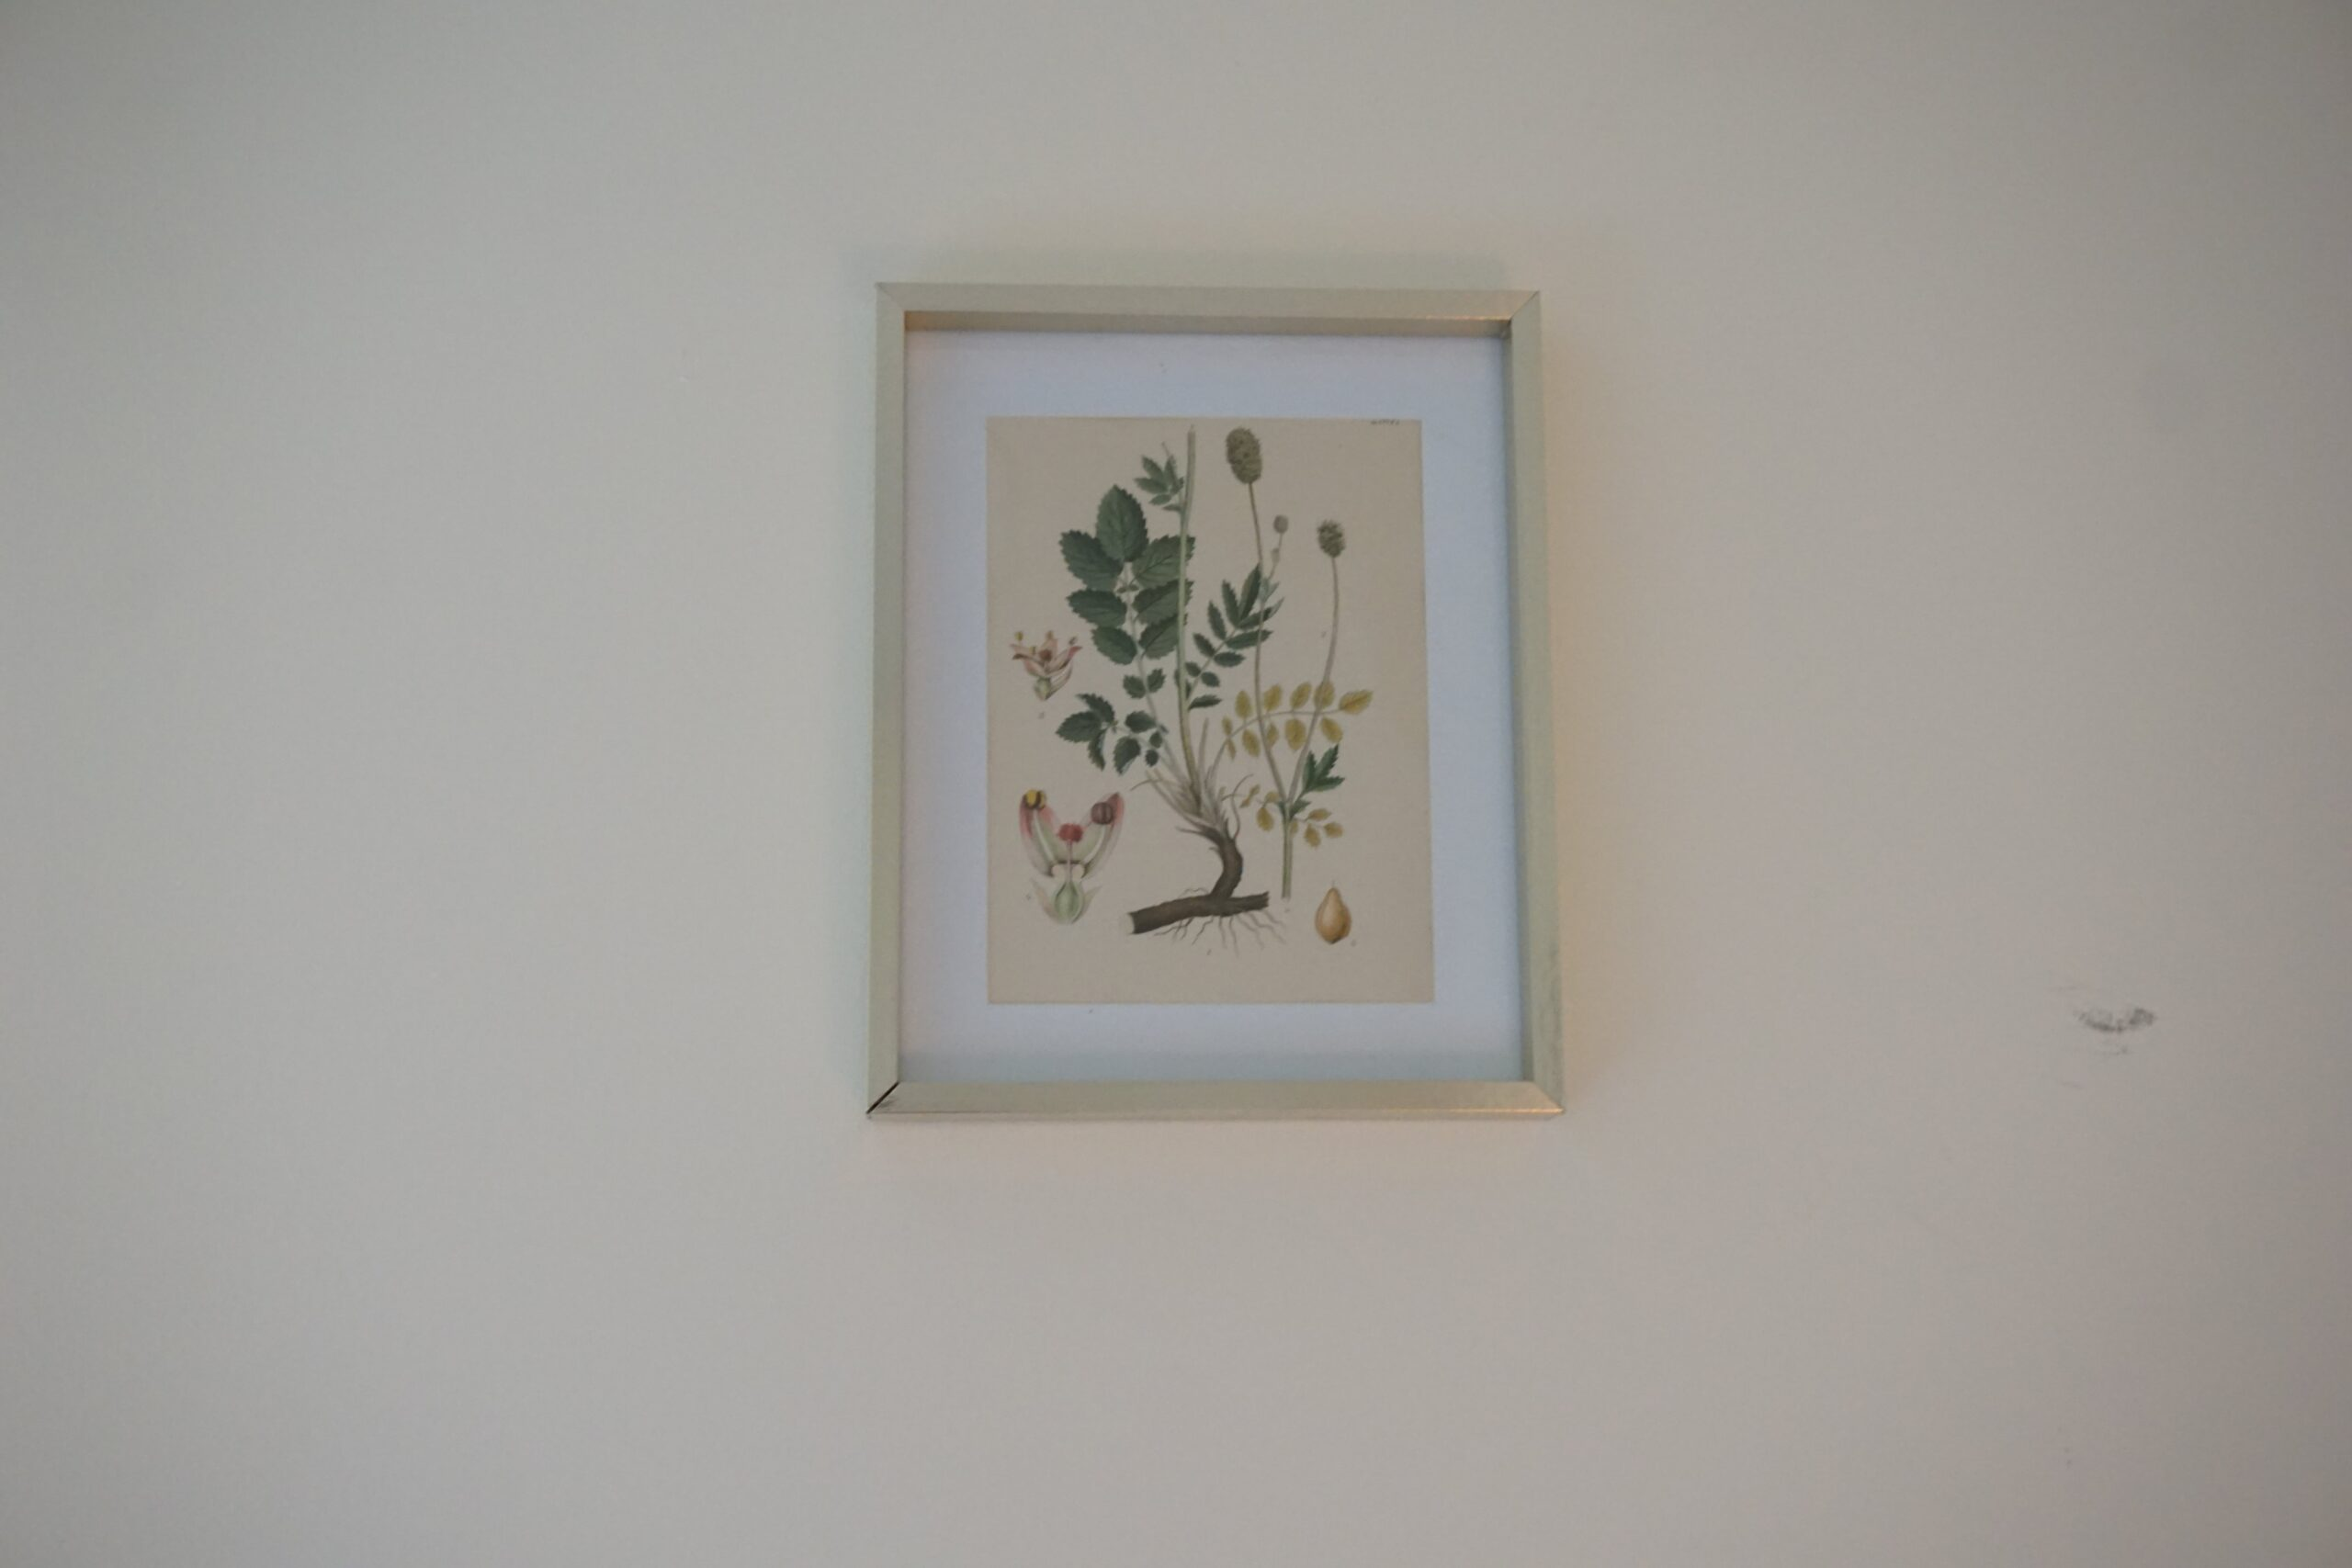 a vintage botanical print in a gold frame hanging on a beige wall